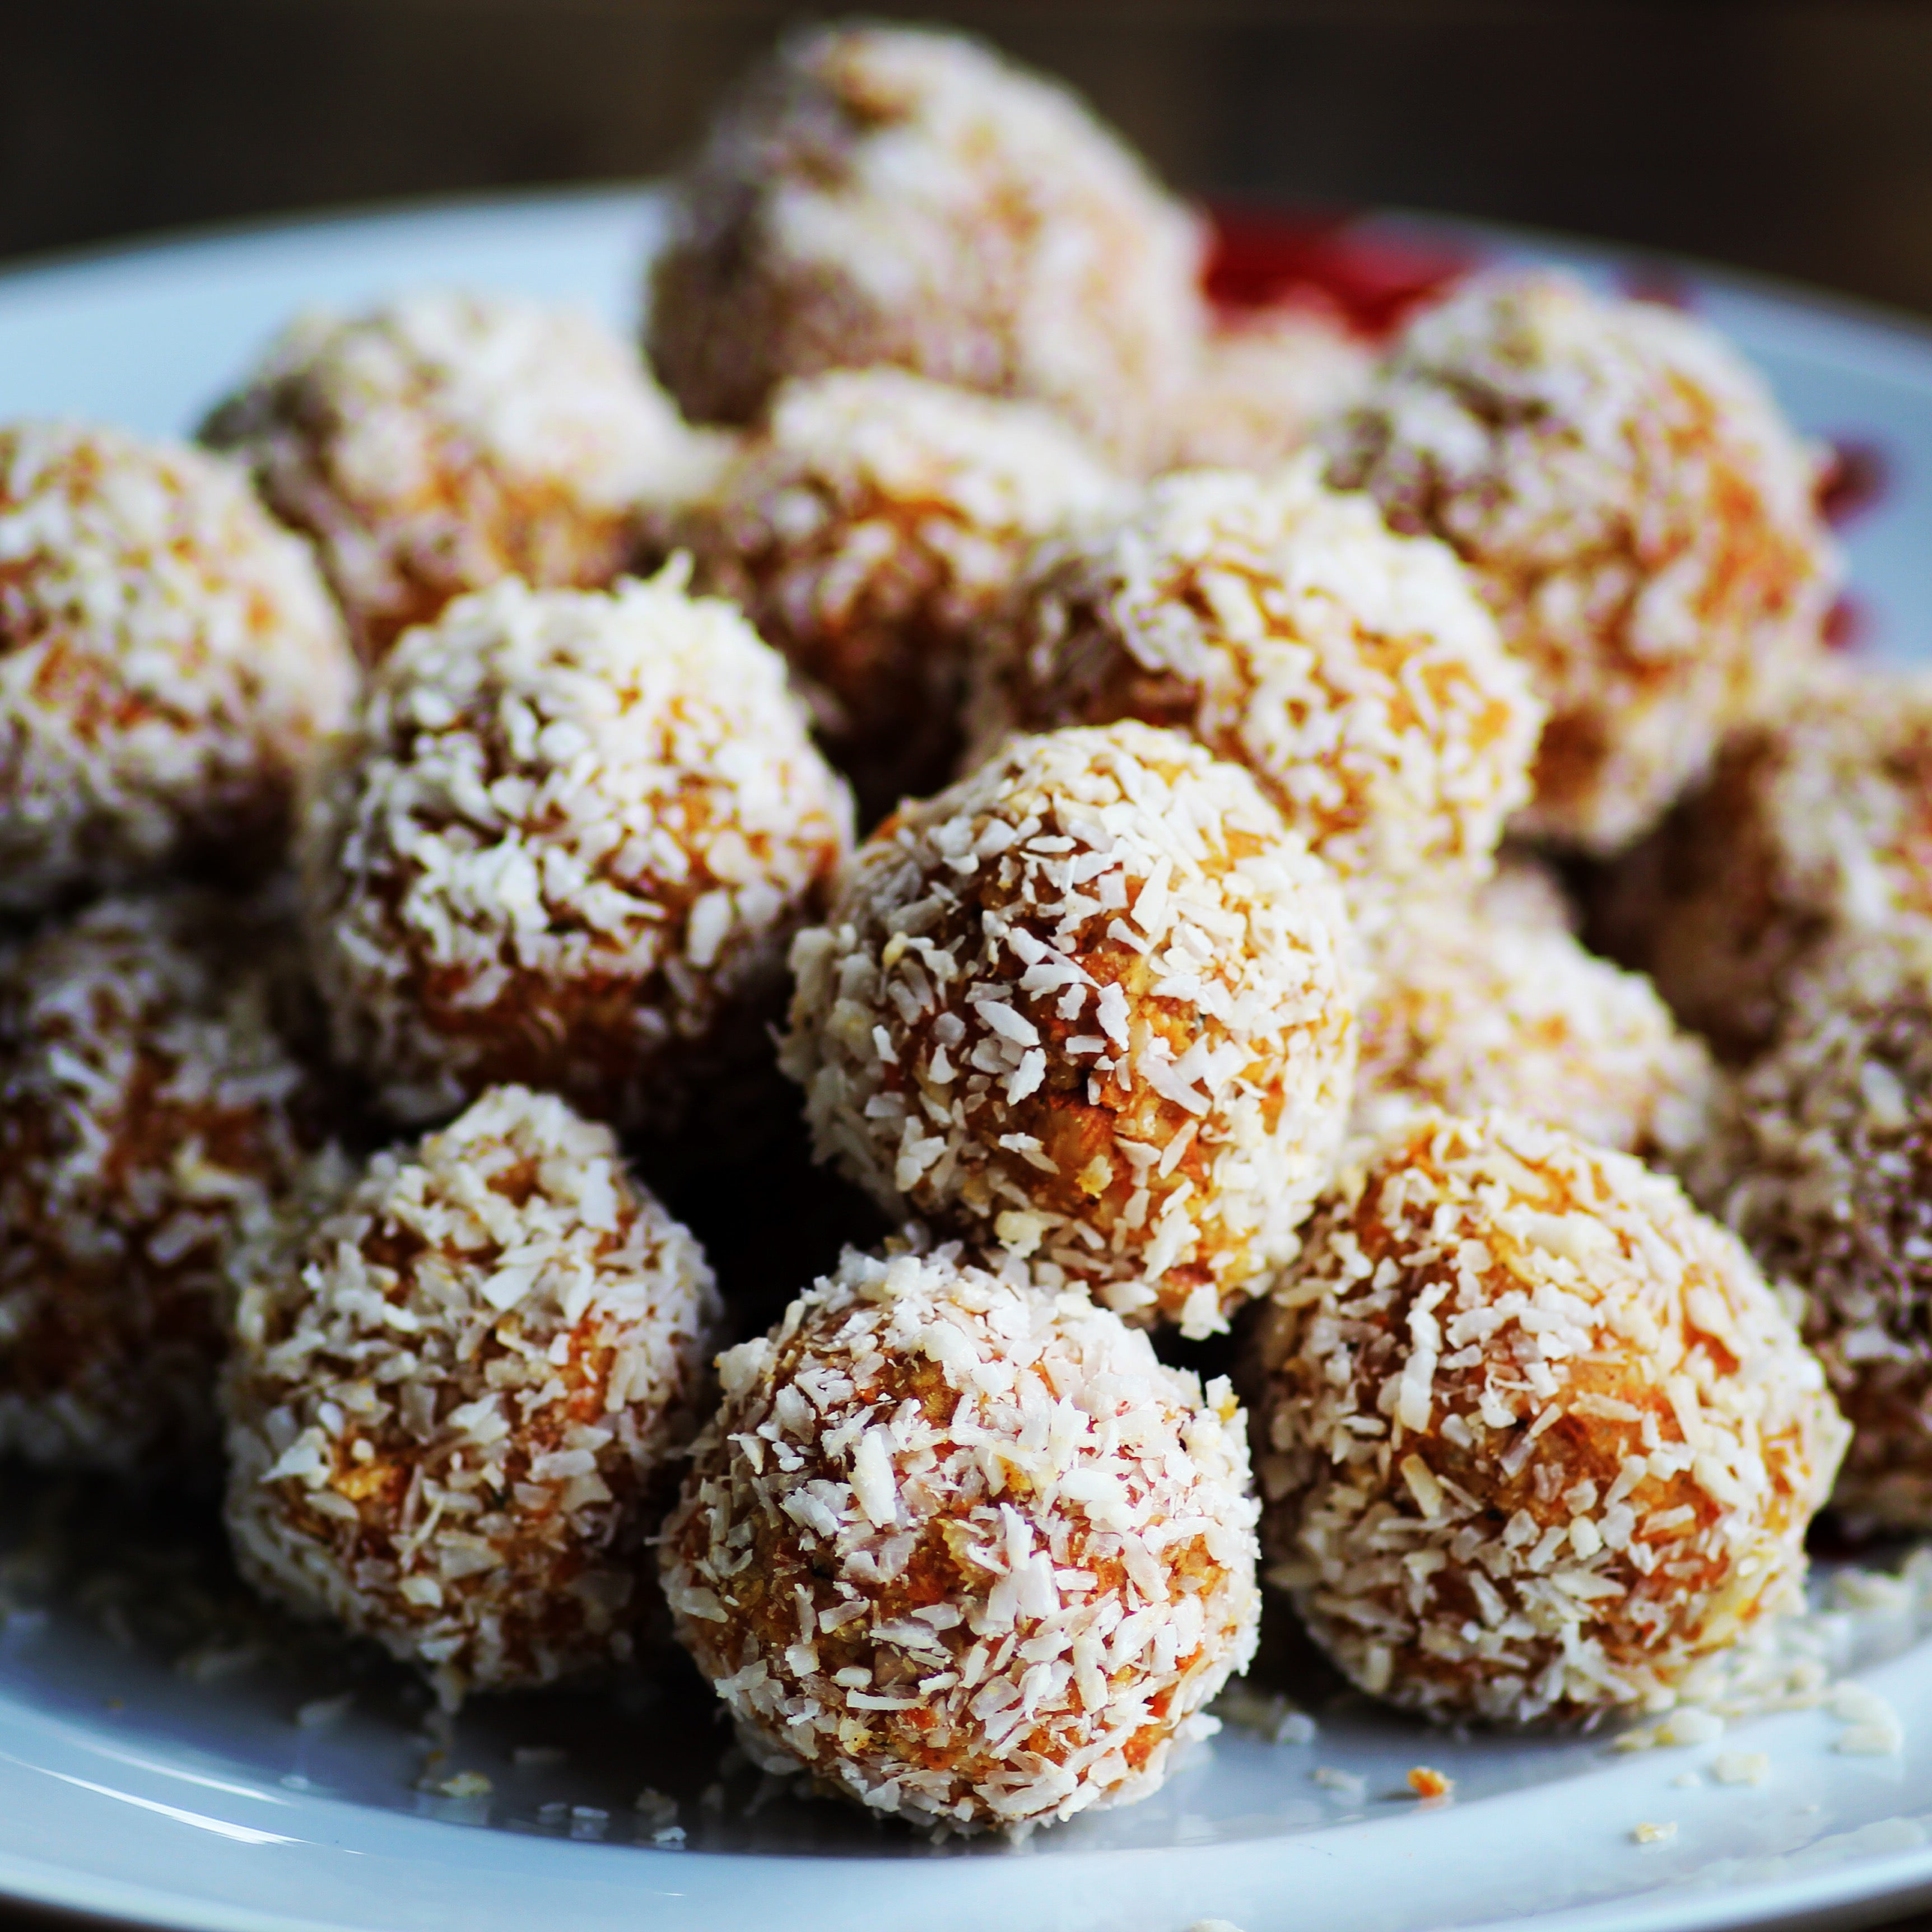 Apple Walnut Snack Balls